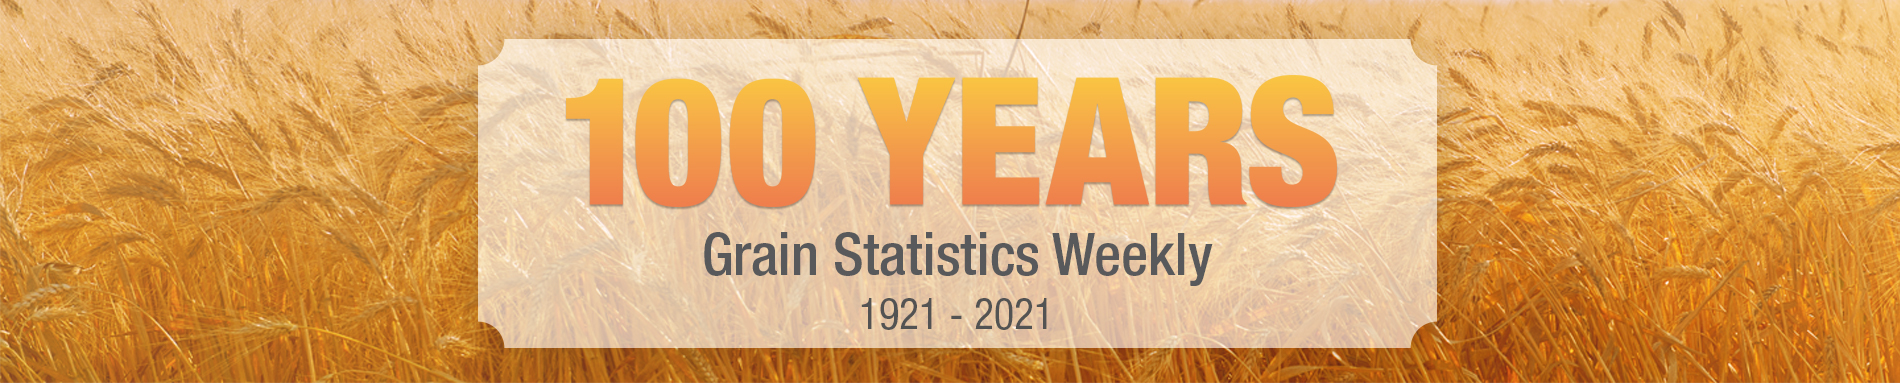 Grain Statistics Weekly turns 100